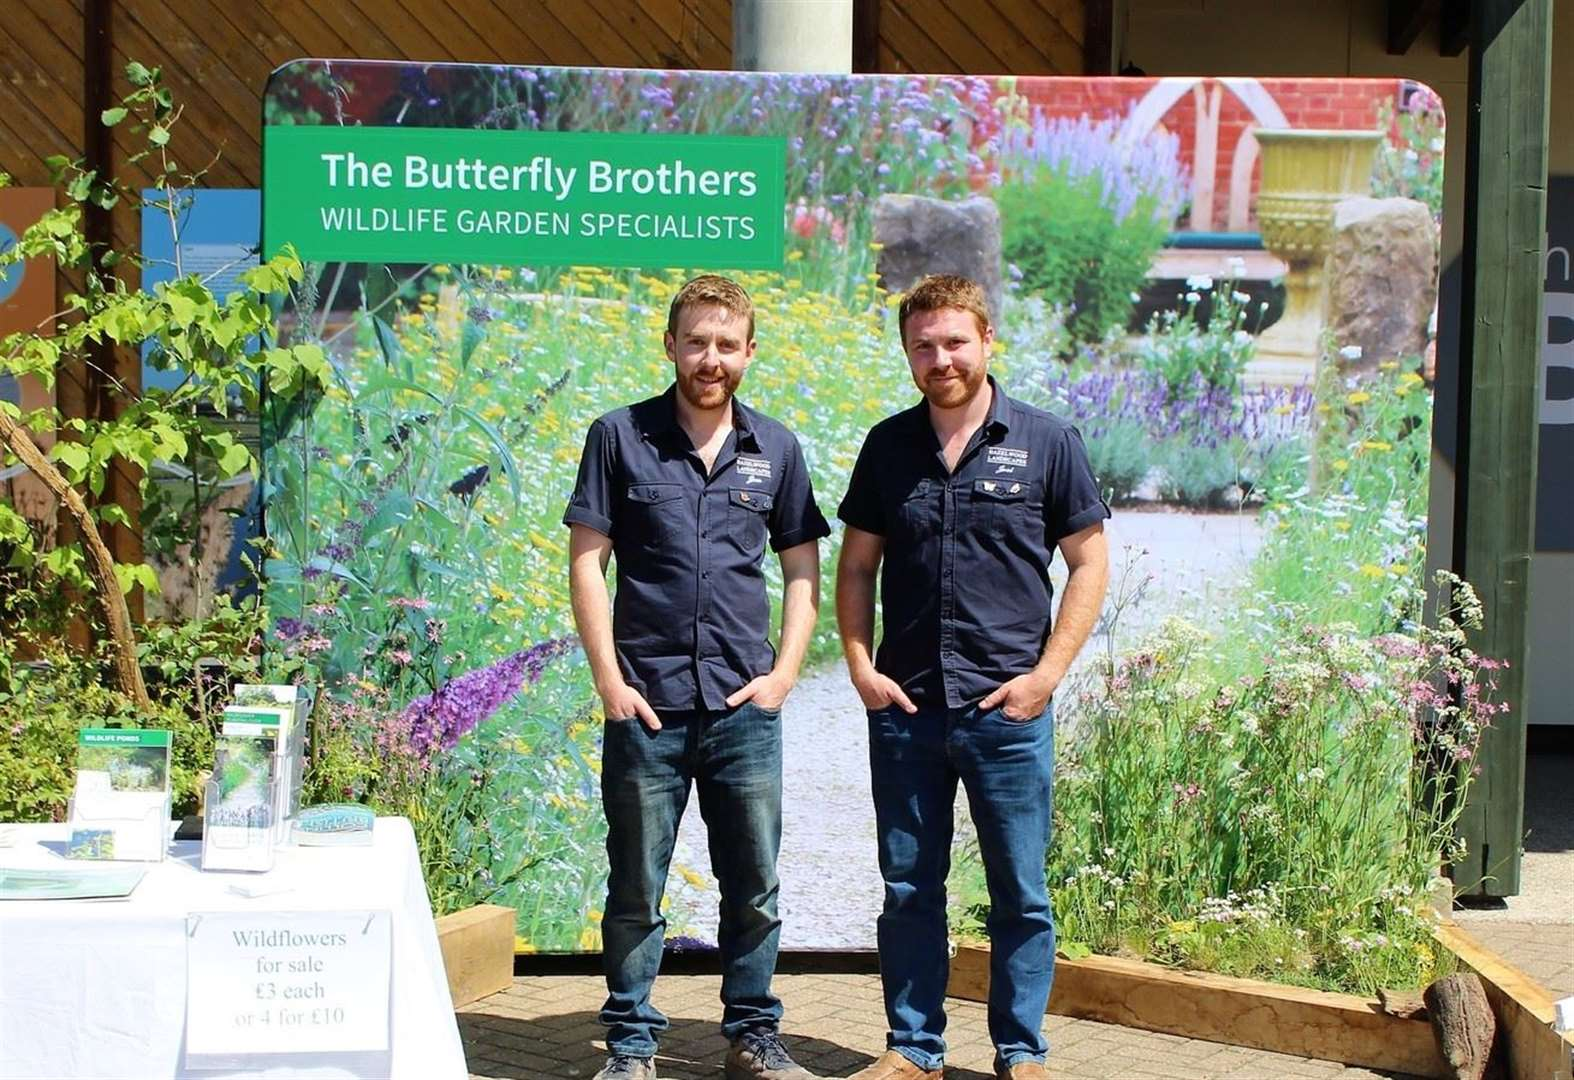 BBC 2's Gardeners' World to feature the 'Butterfly Brothers' from Bourne tonight